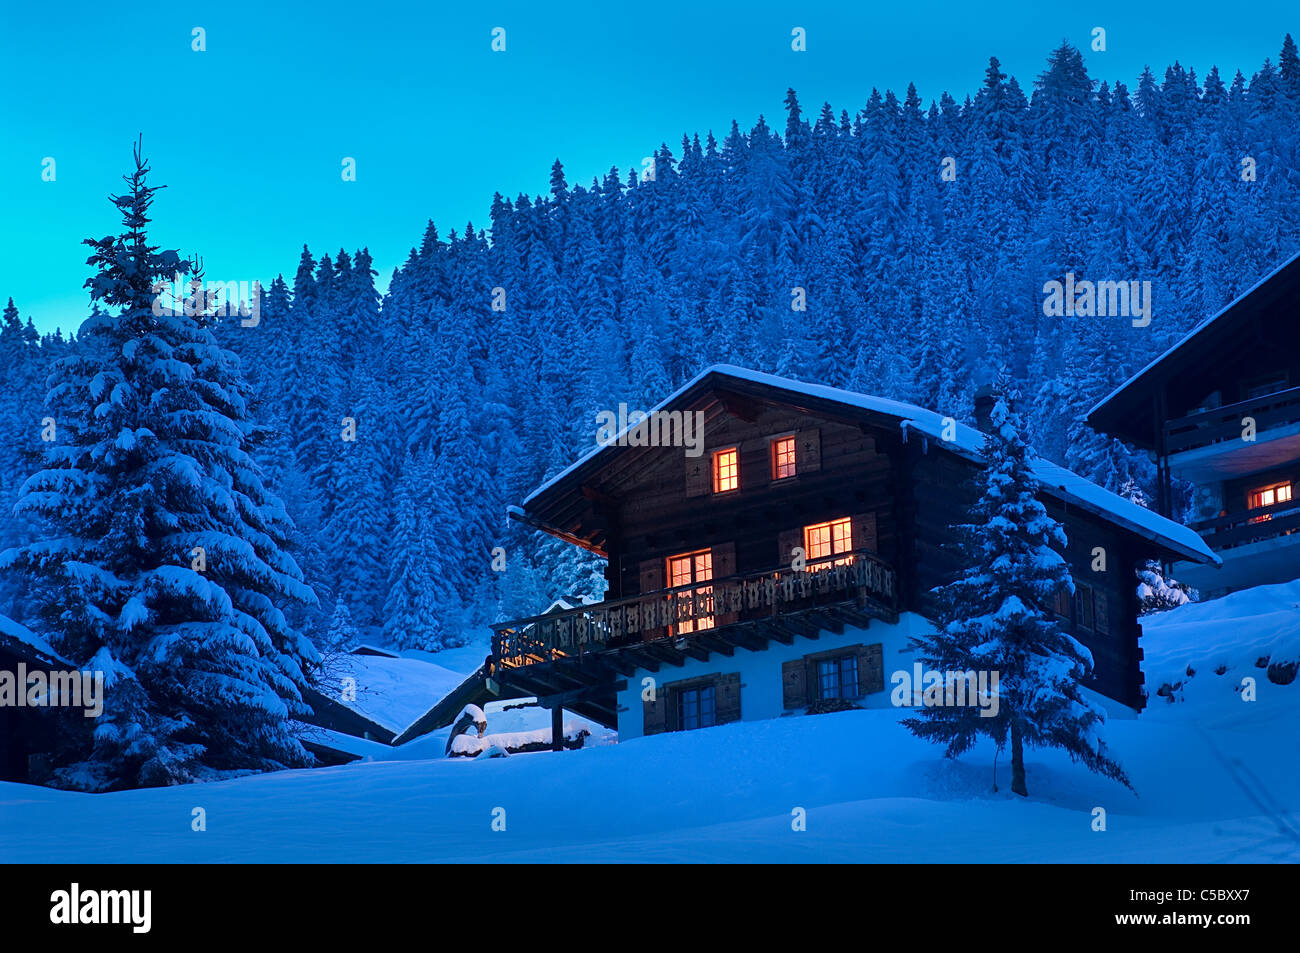 Lights lit in cottages against fir trees at winter evening - Stock Image